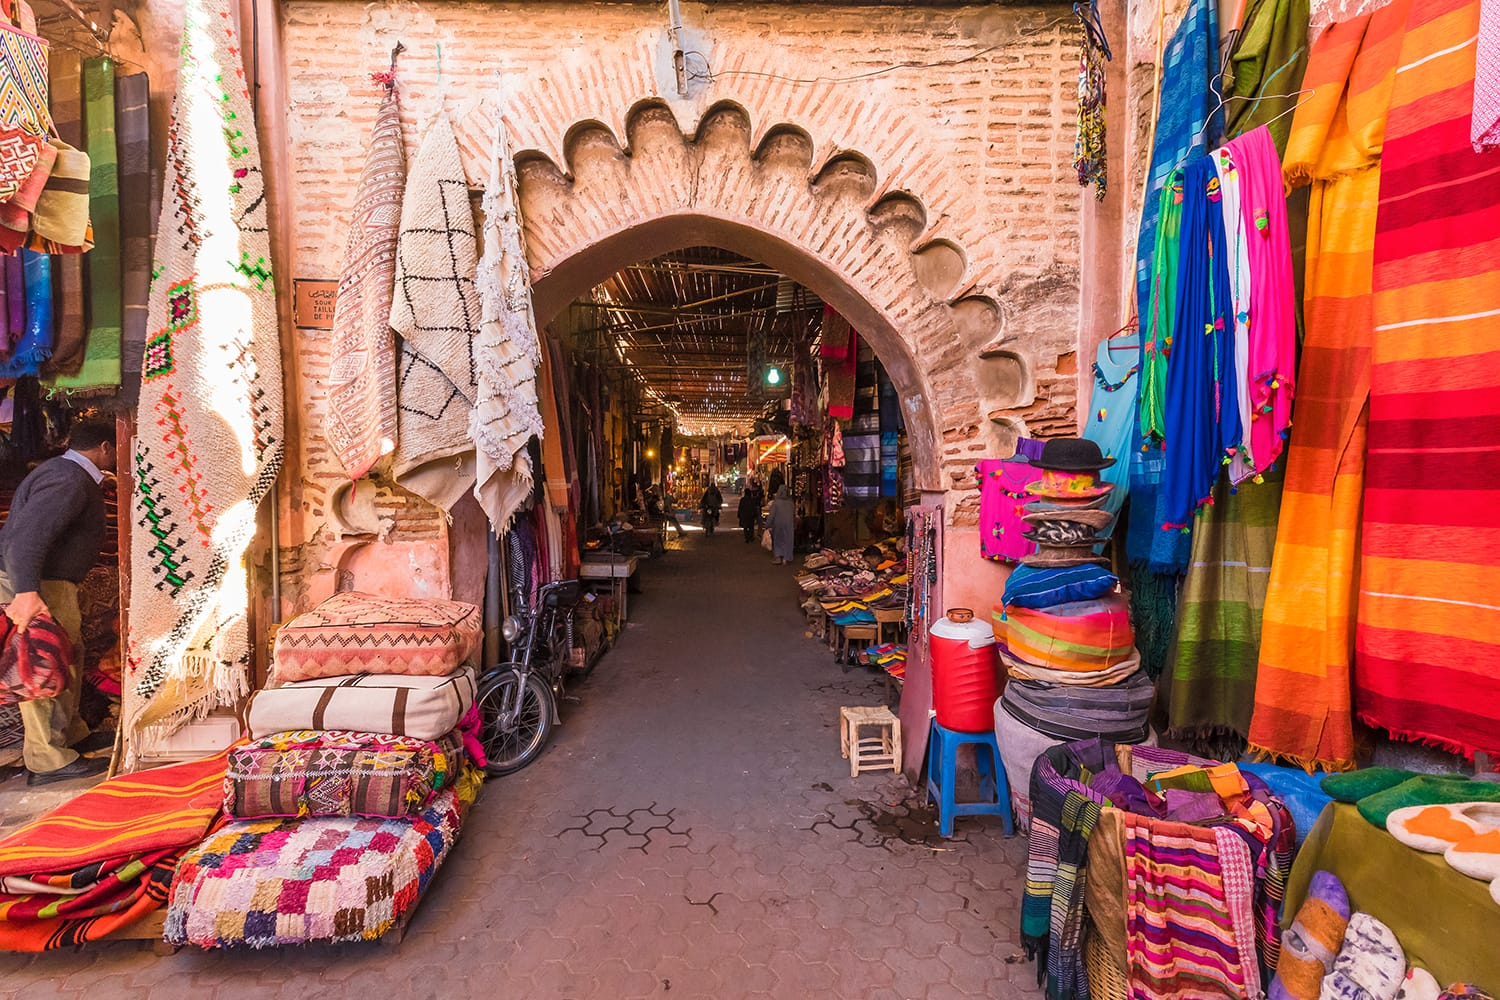 Souvenirs at the souk in Marrakech, Morocco